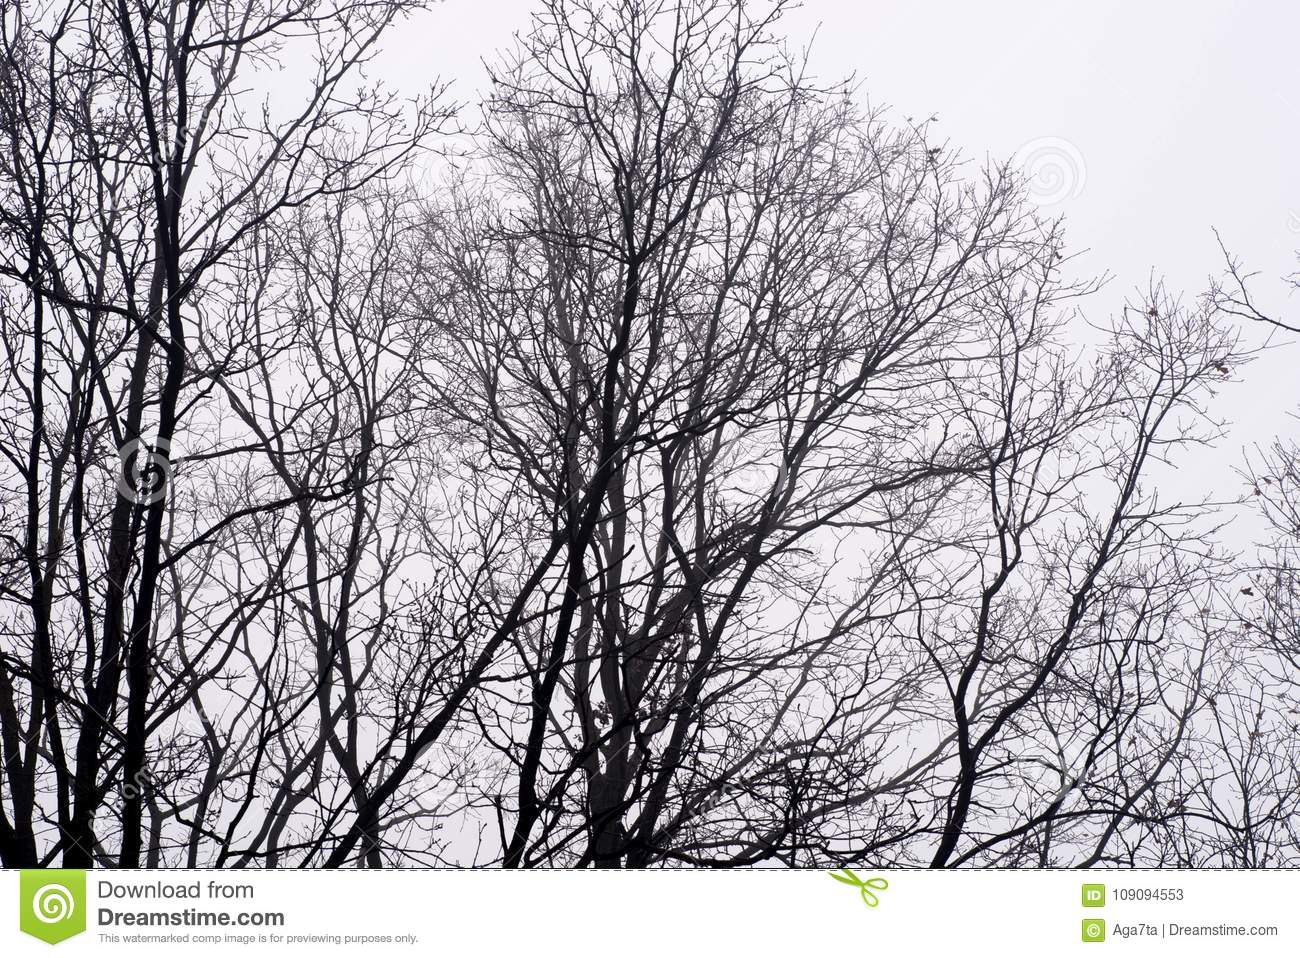 Barren tree branches against sky on foggy morning